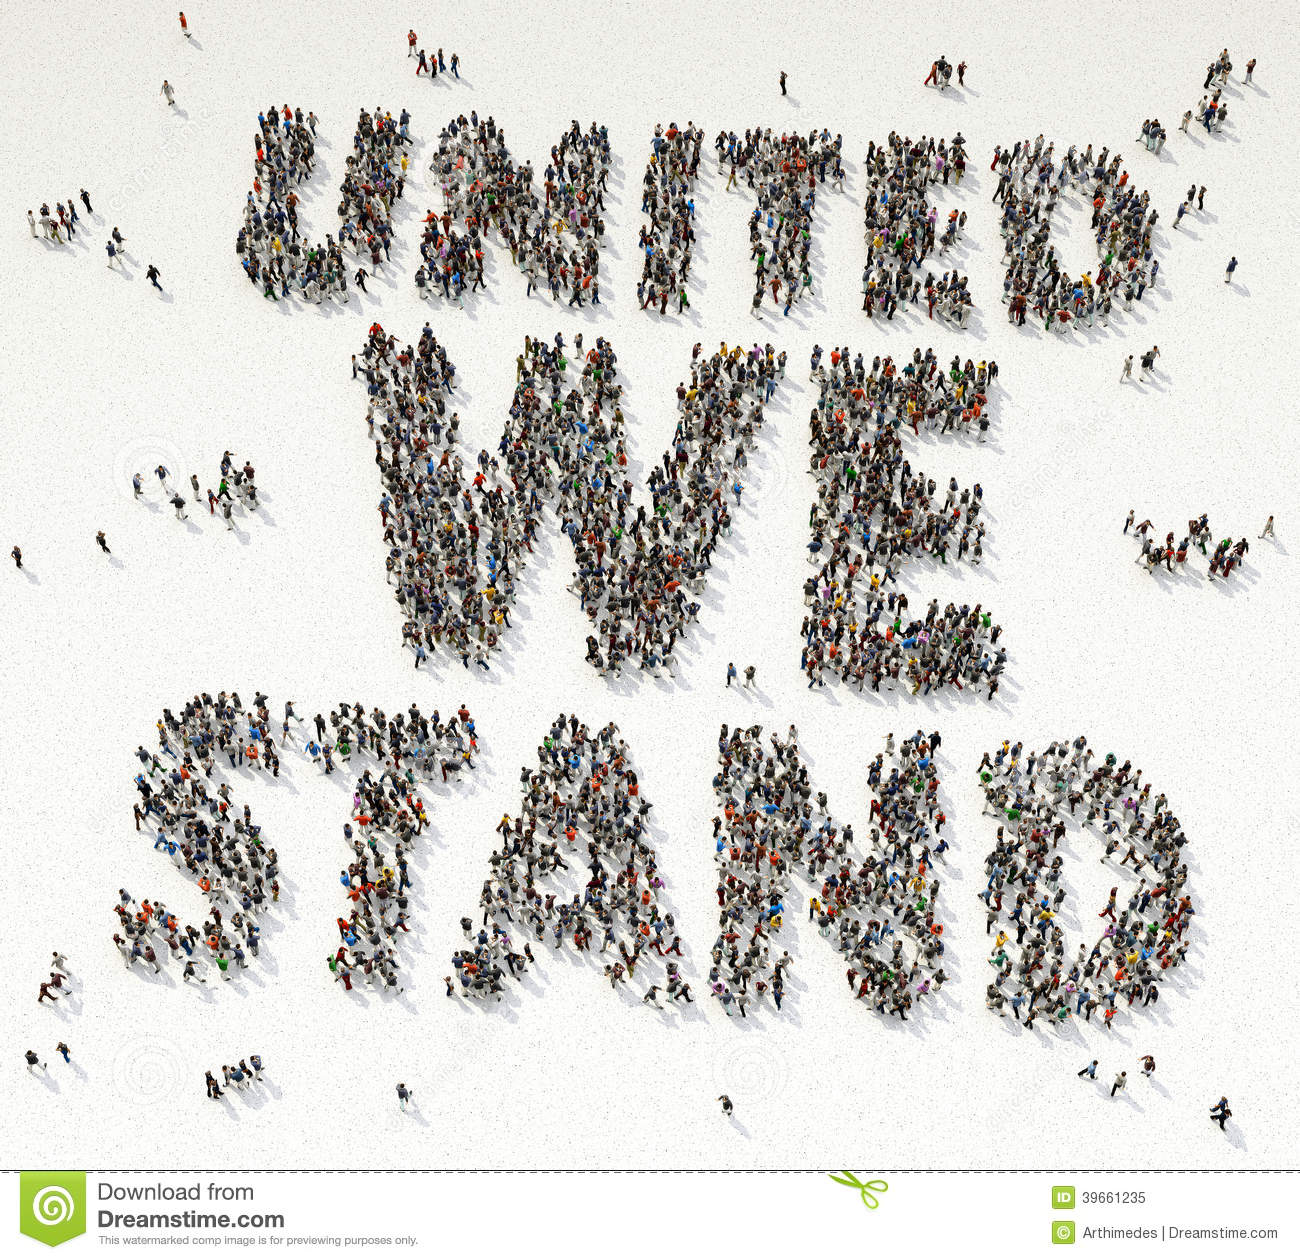 UNITED WE STAY Text Written Out Of People